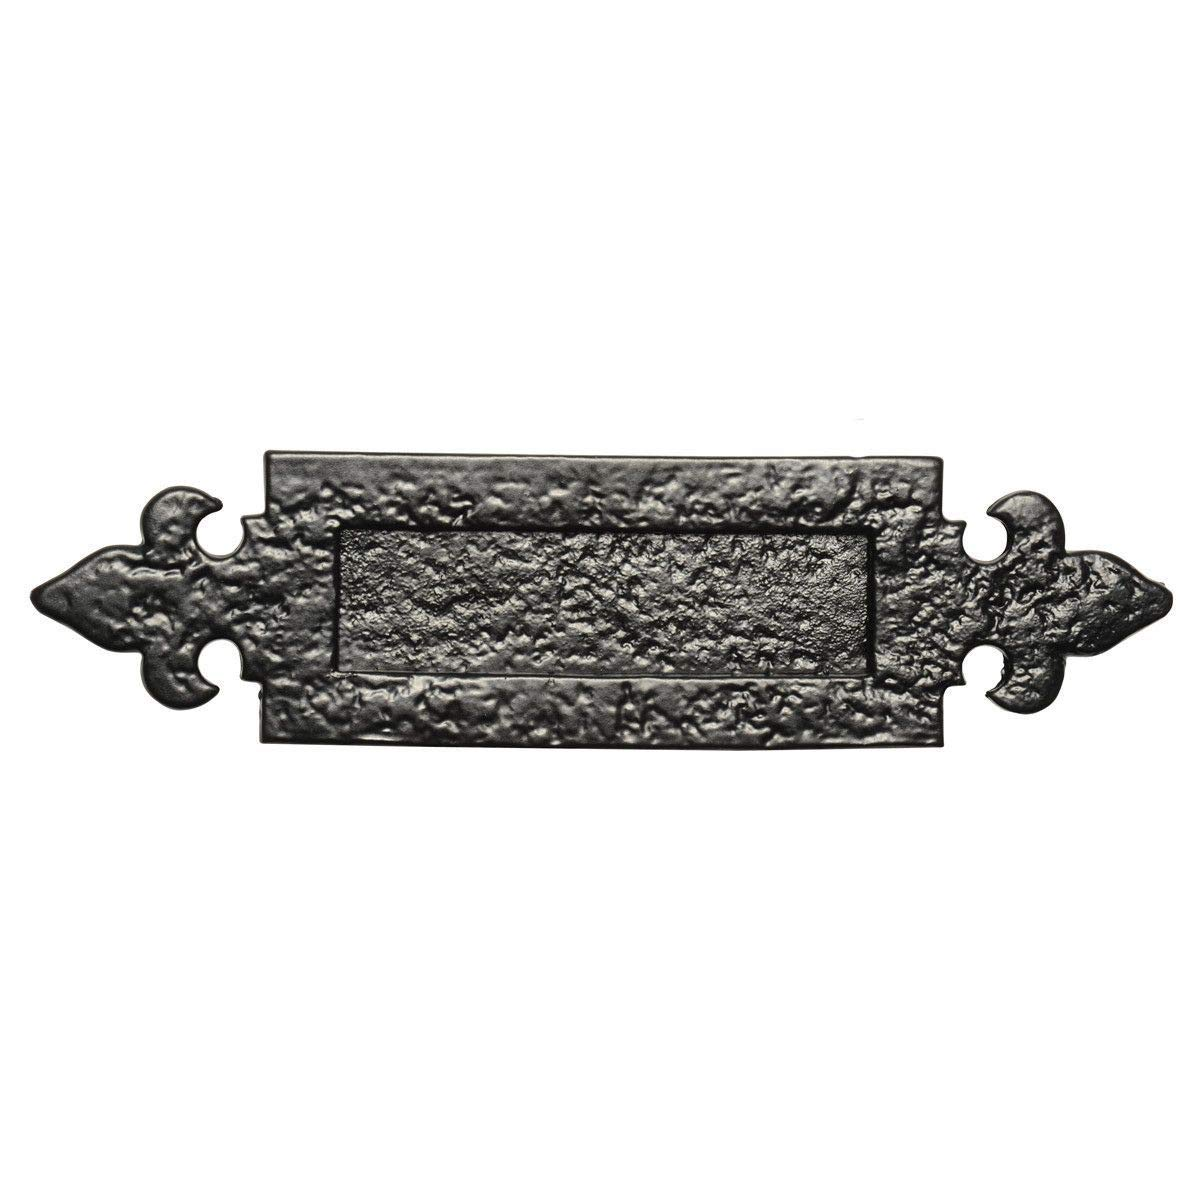 Medieval Style Black Iron Letter Plate with Fleur De Lys Detailing - 12' x 3' Black Country Metal Works